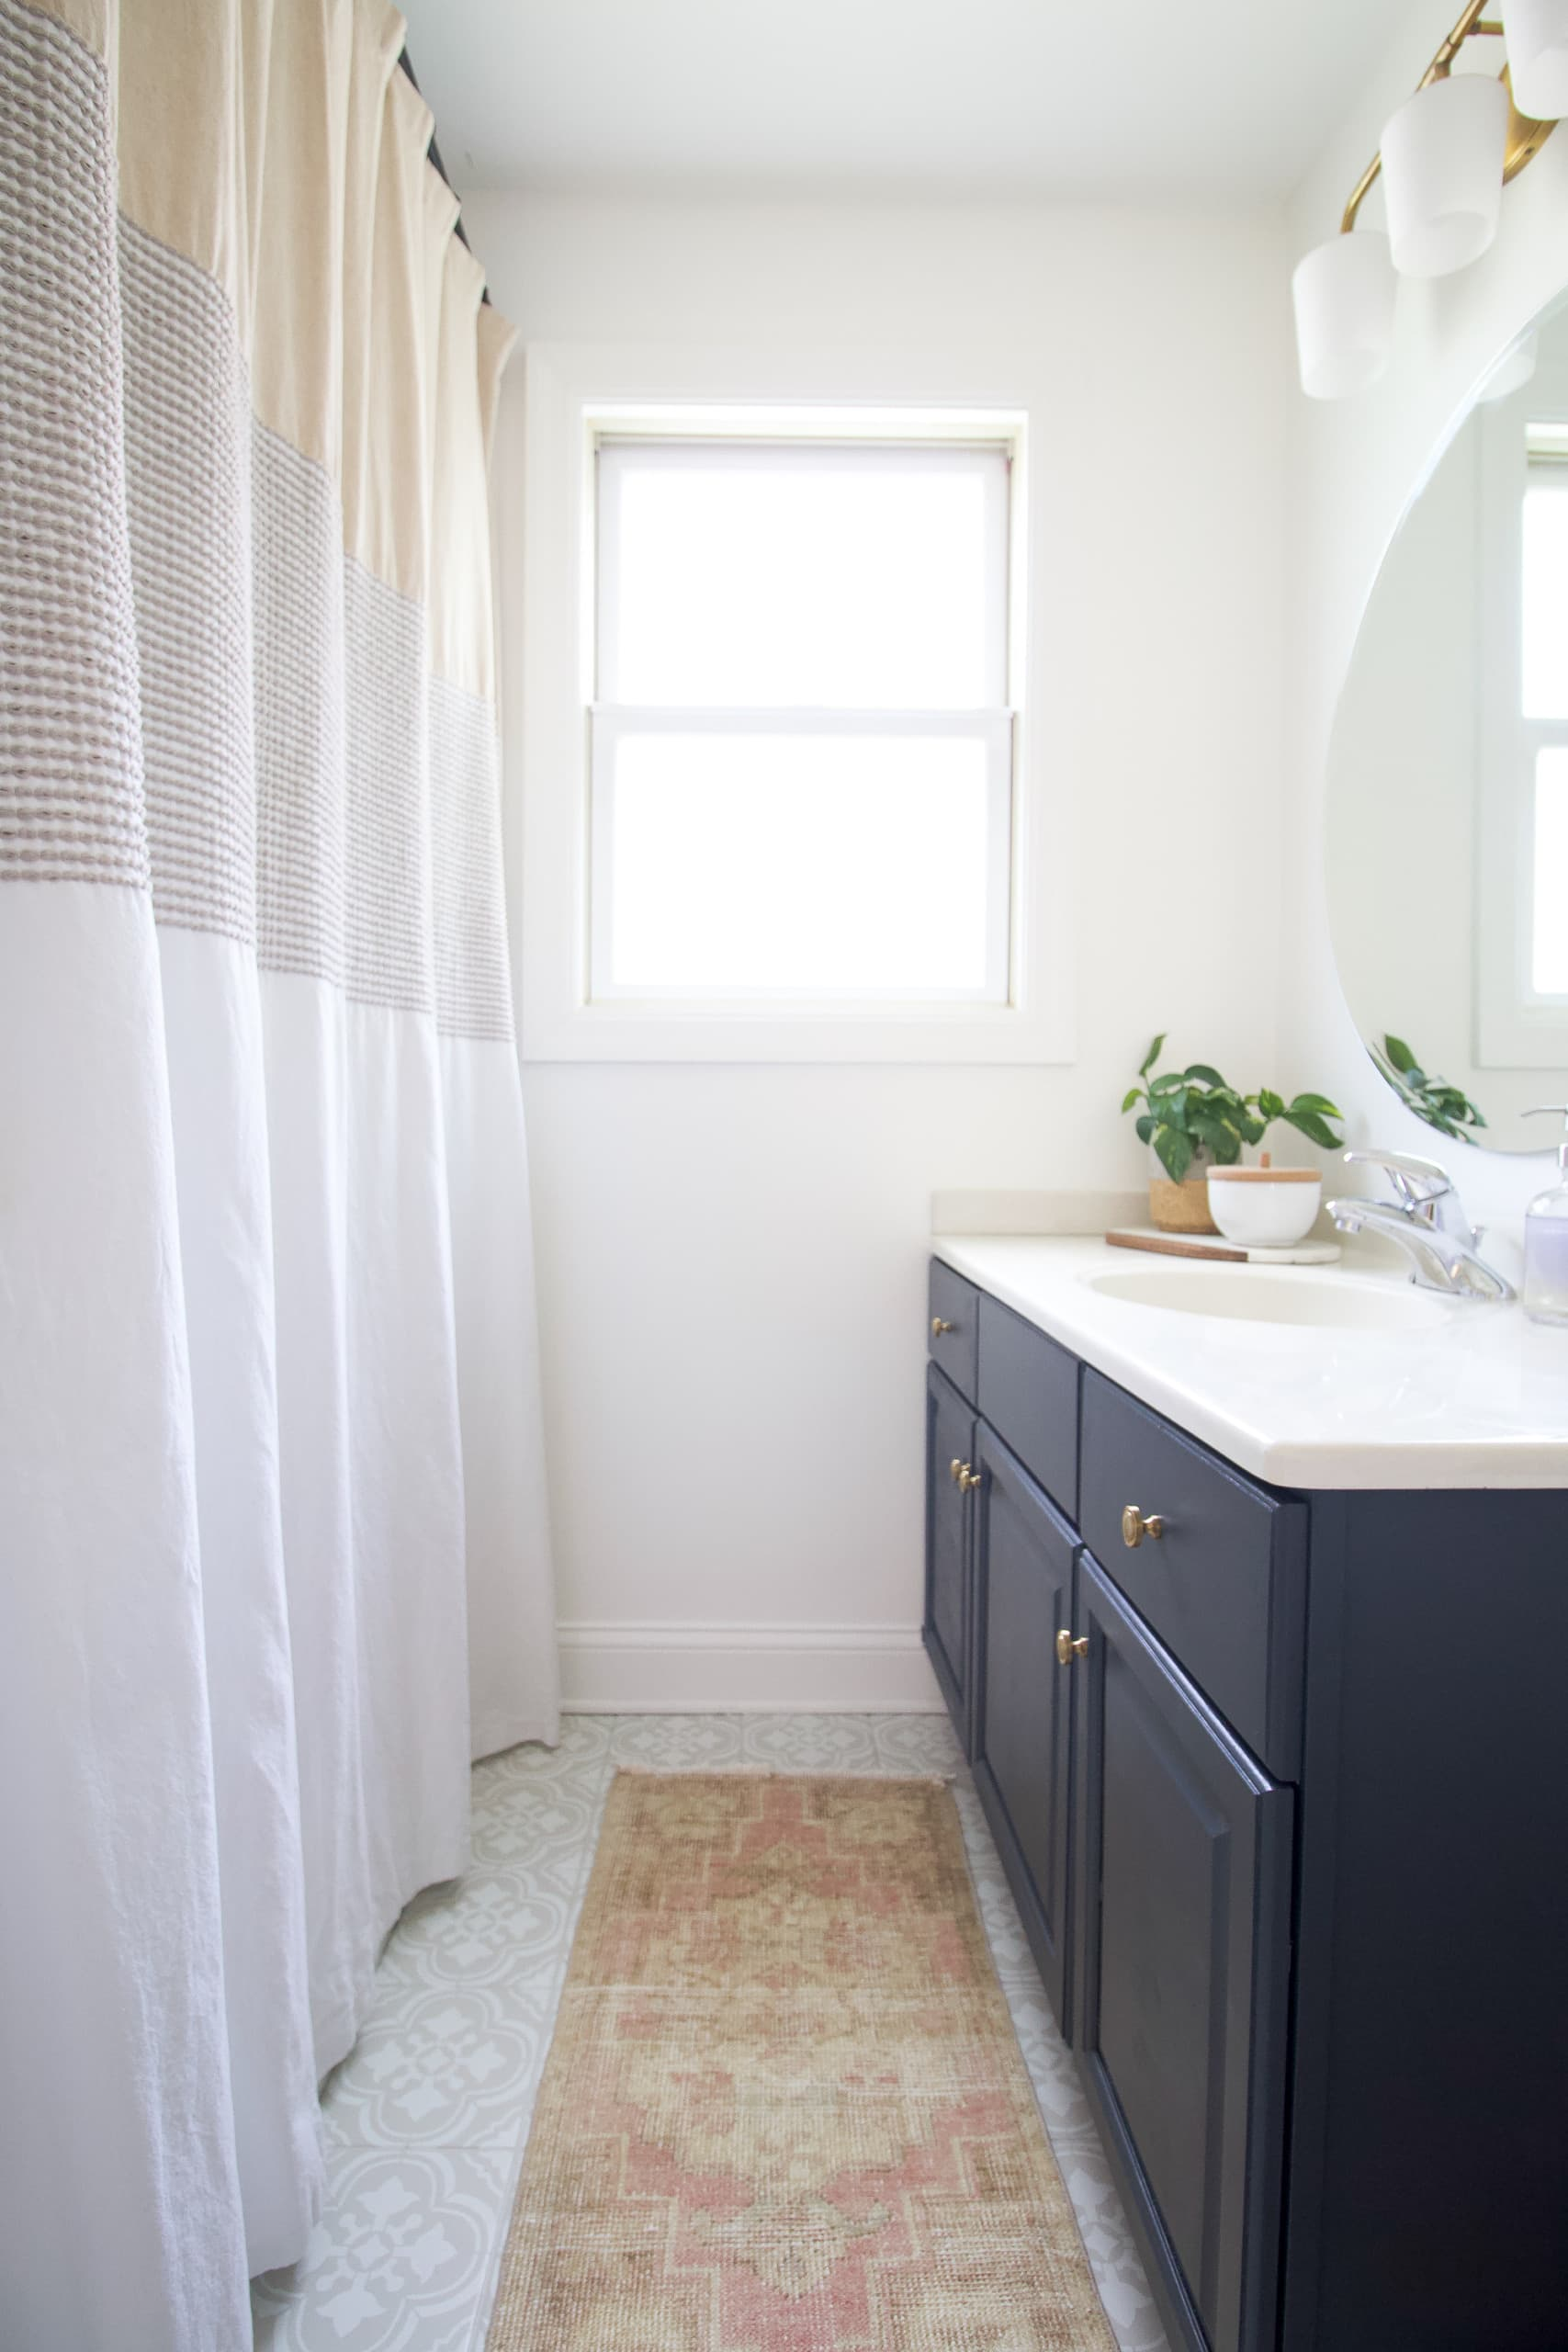 Our budget bathroom makeover